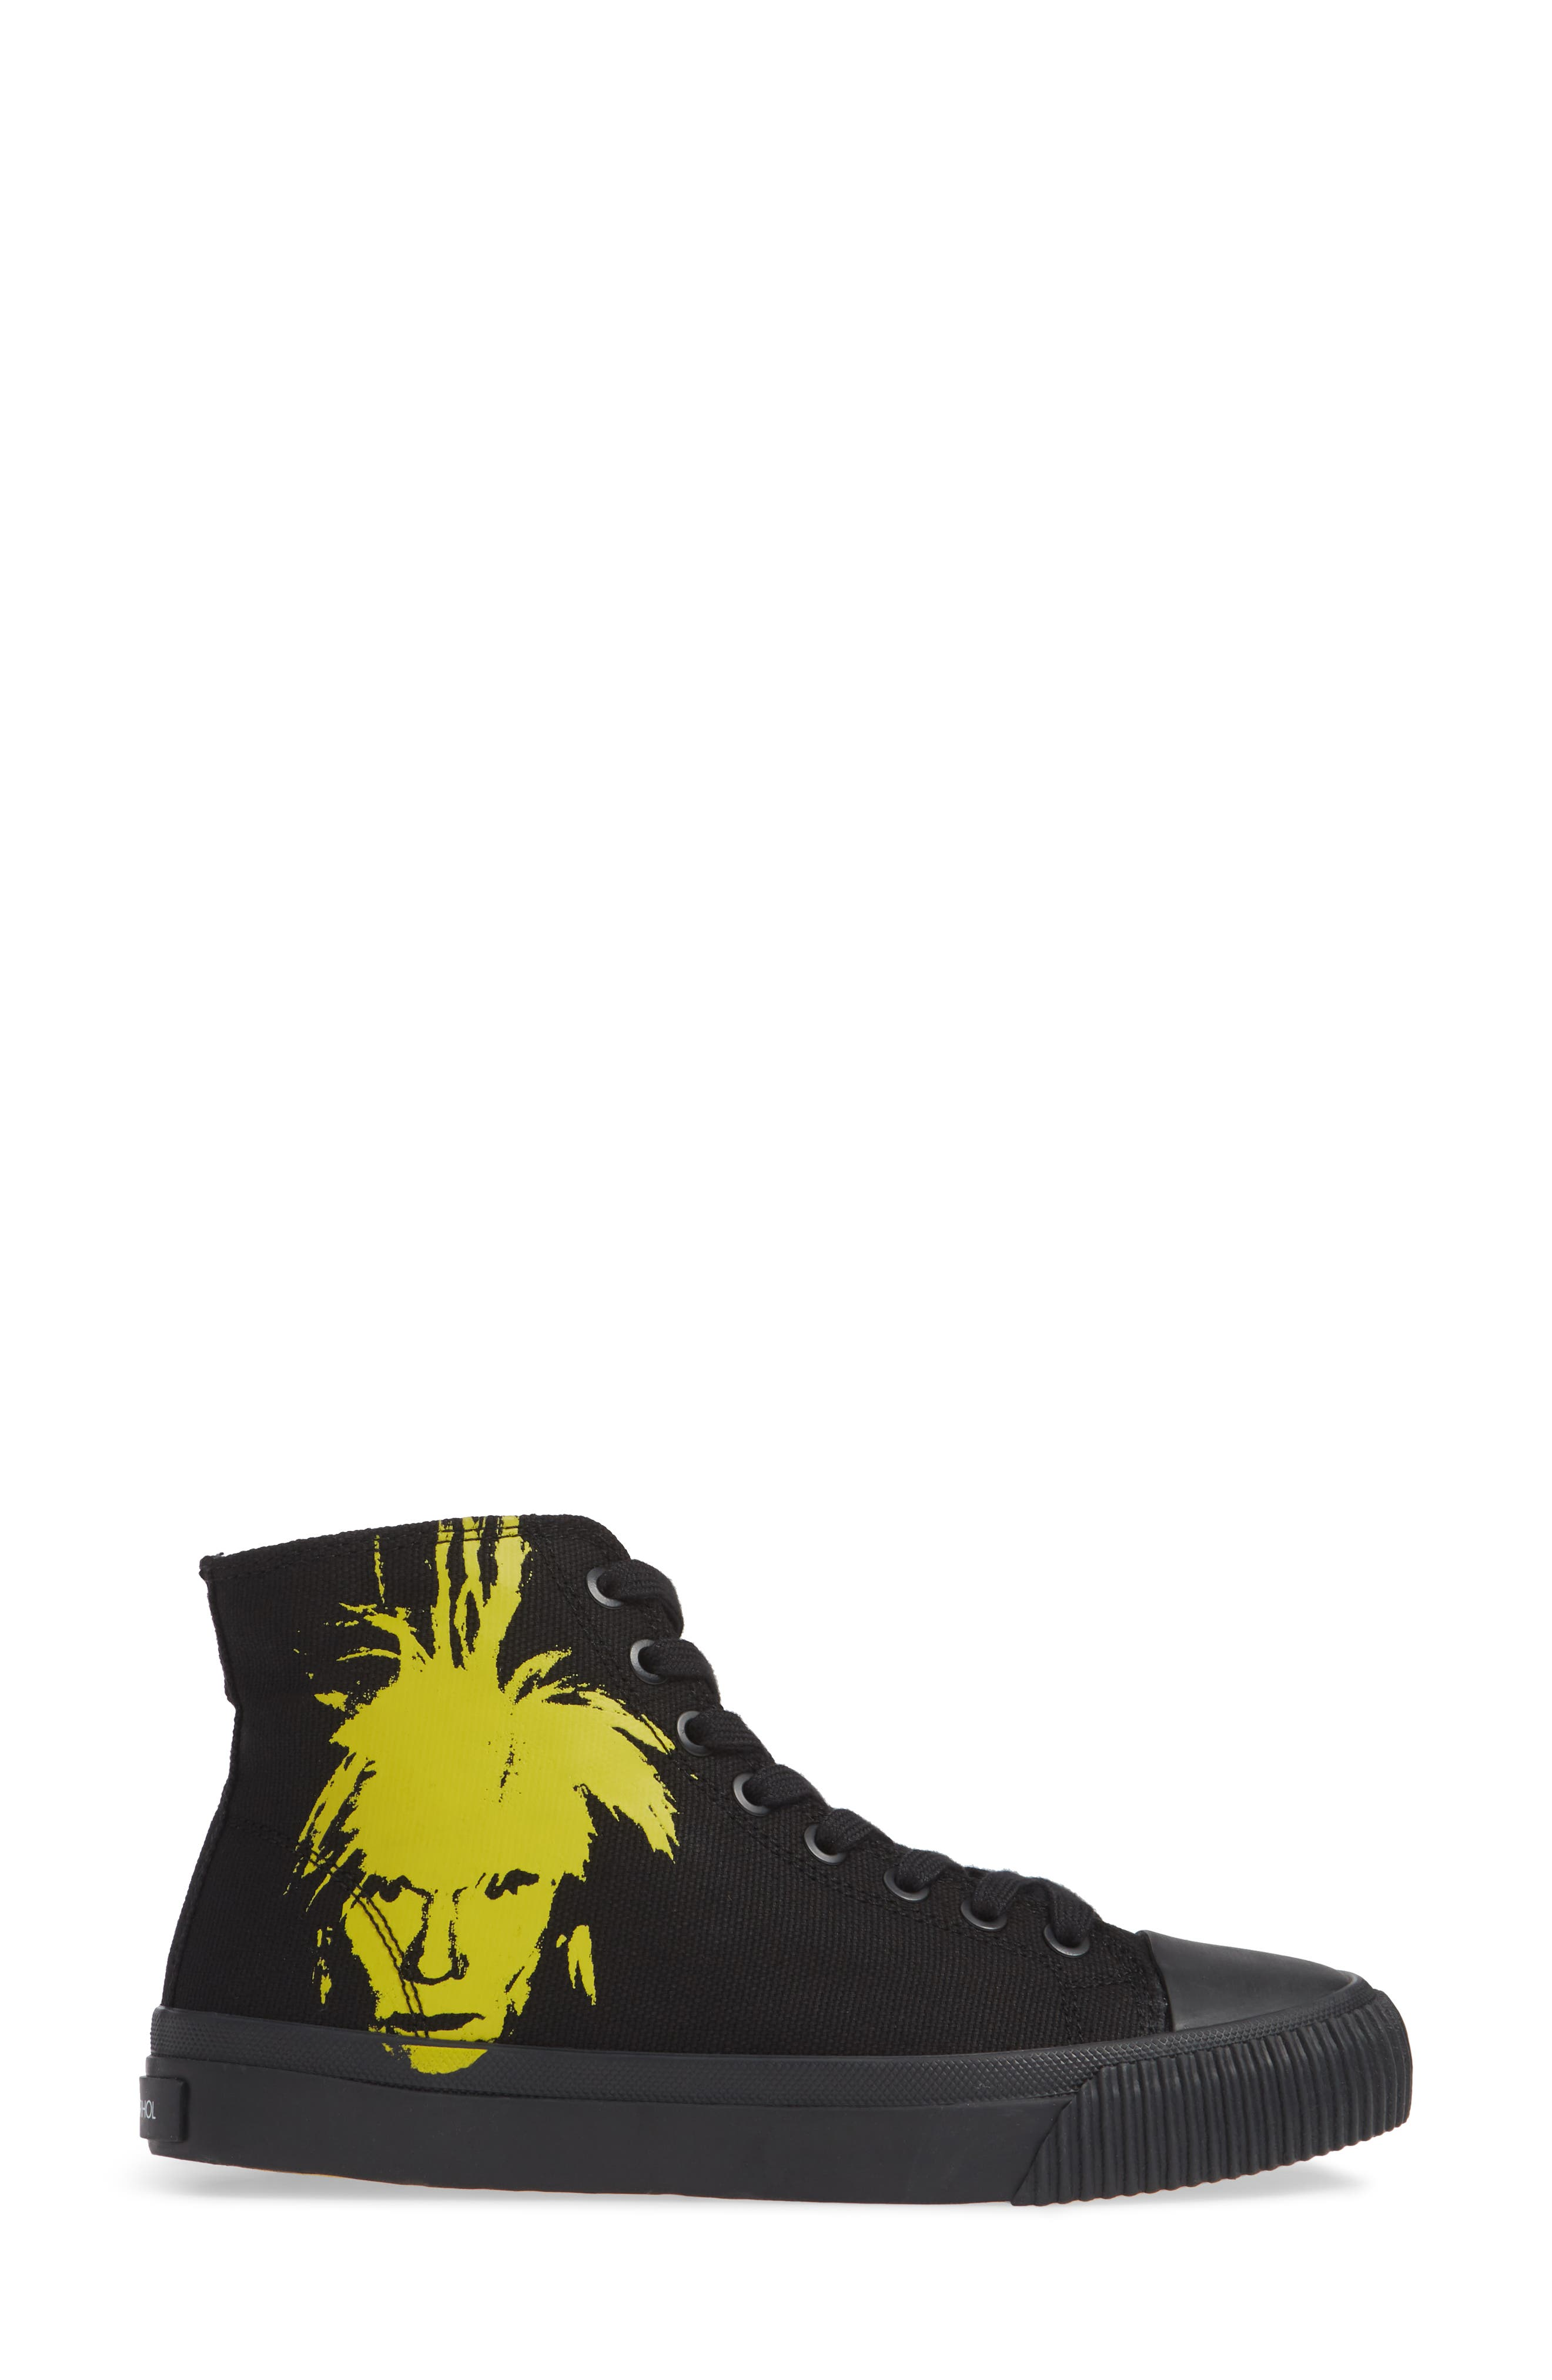 Iconica High Top Sneaker,                             Alternate thumbnail 3, color,                             001